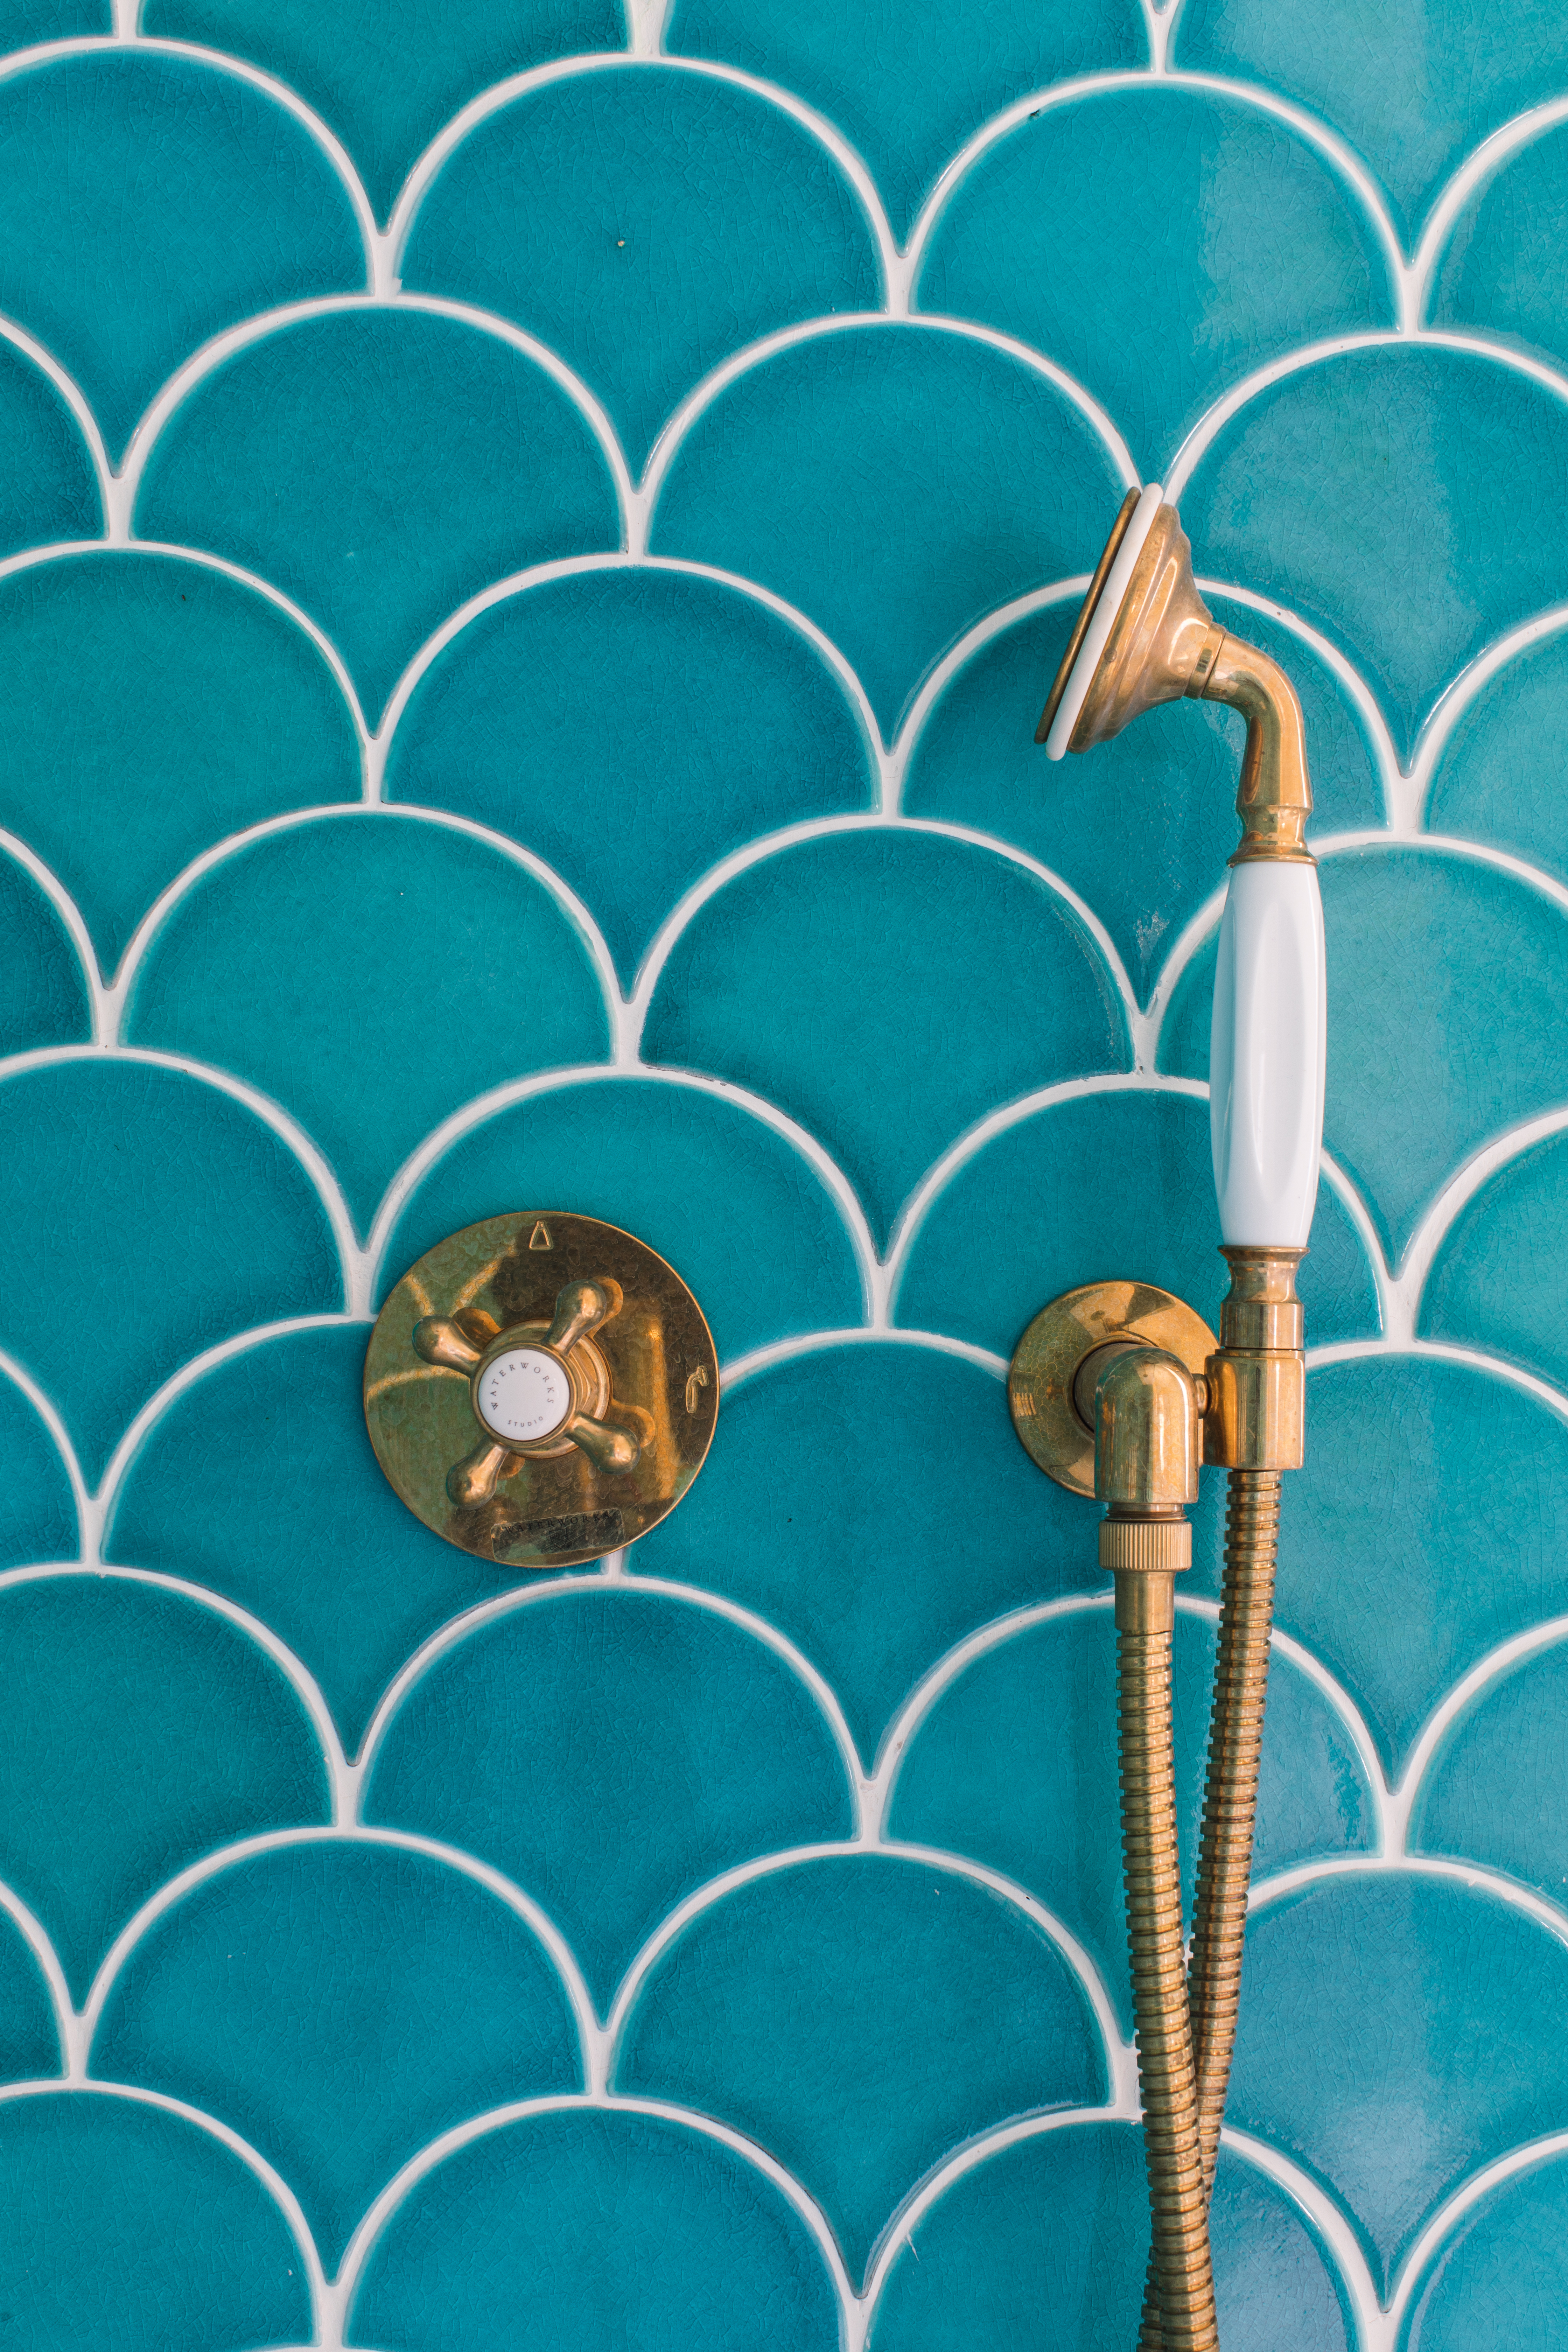 Interior designer Will Taylor, creator of Bright Bazaar, gives his beach house guest bath a getaway-worthy upgrade with white and blue bathroom tiles in an eclectically patterned blend.